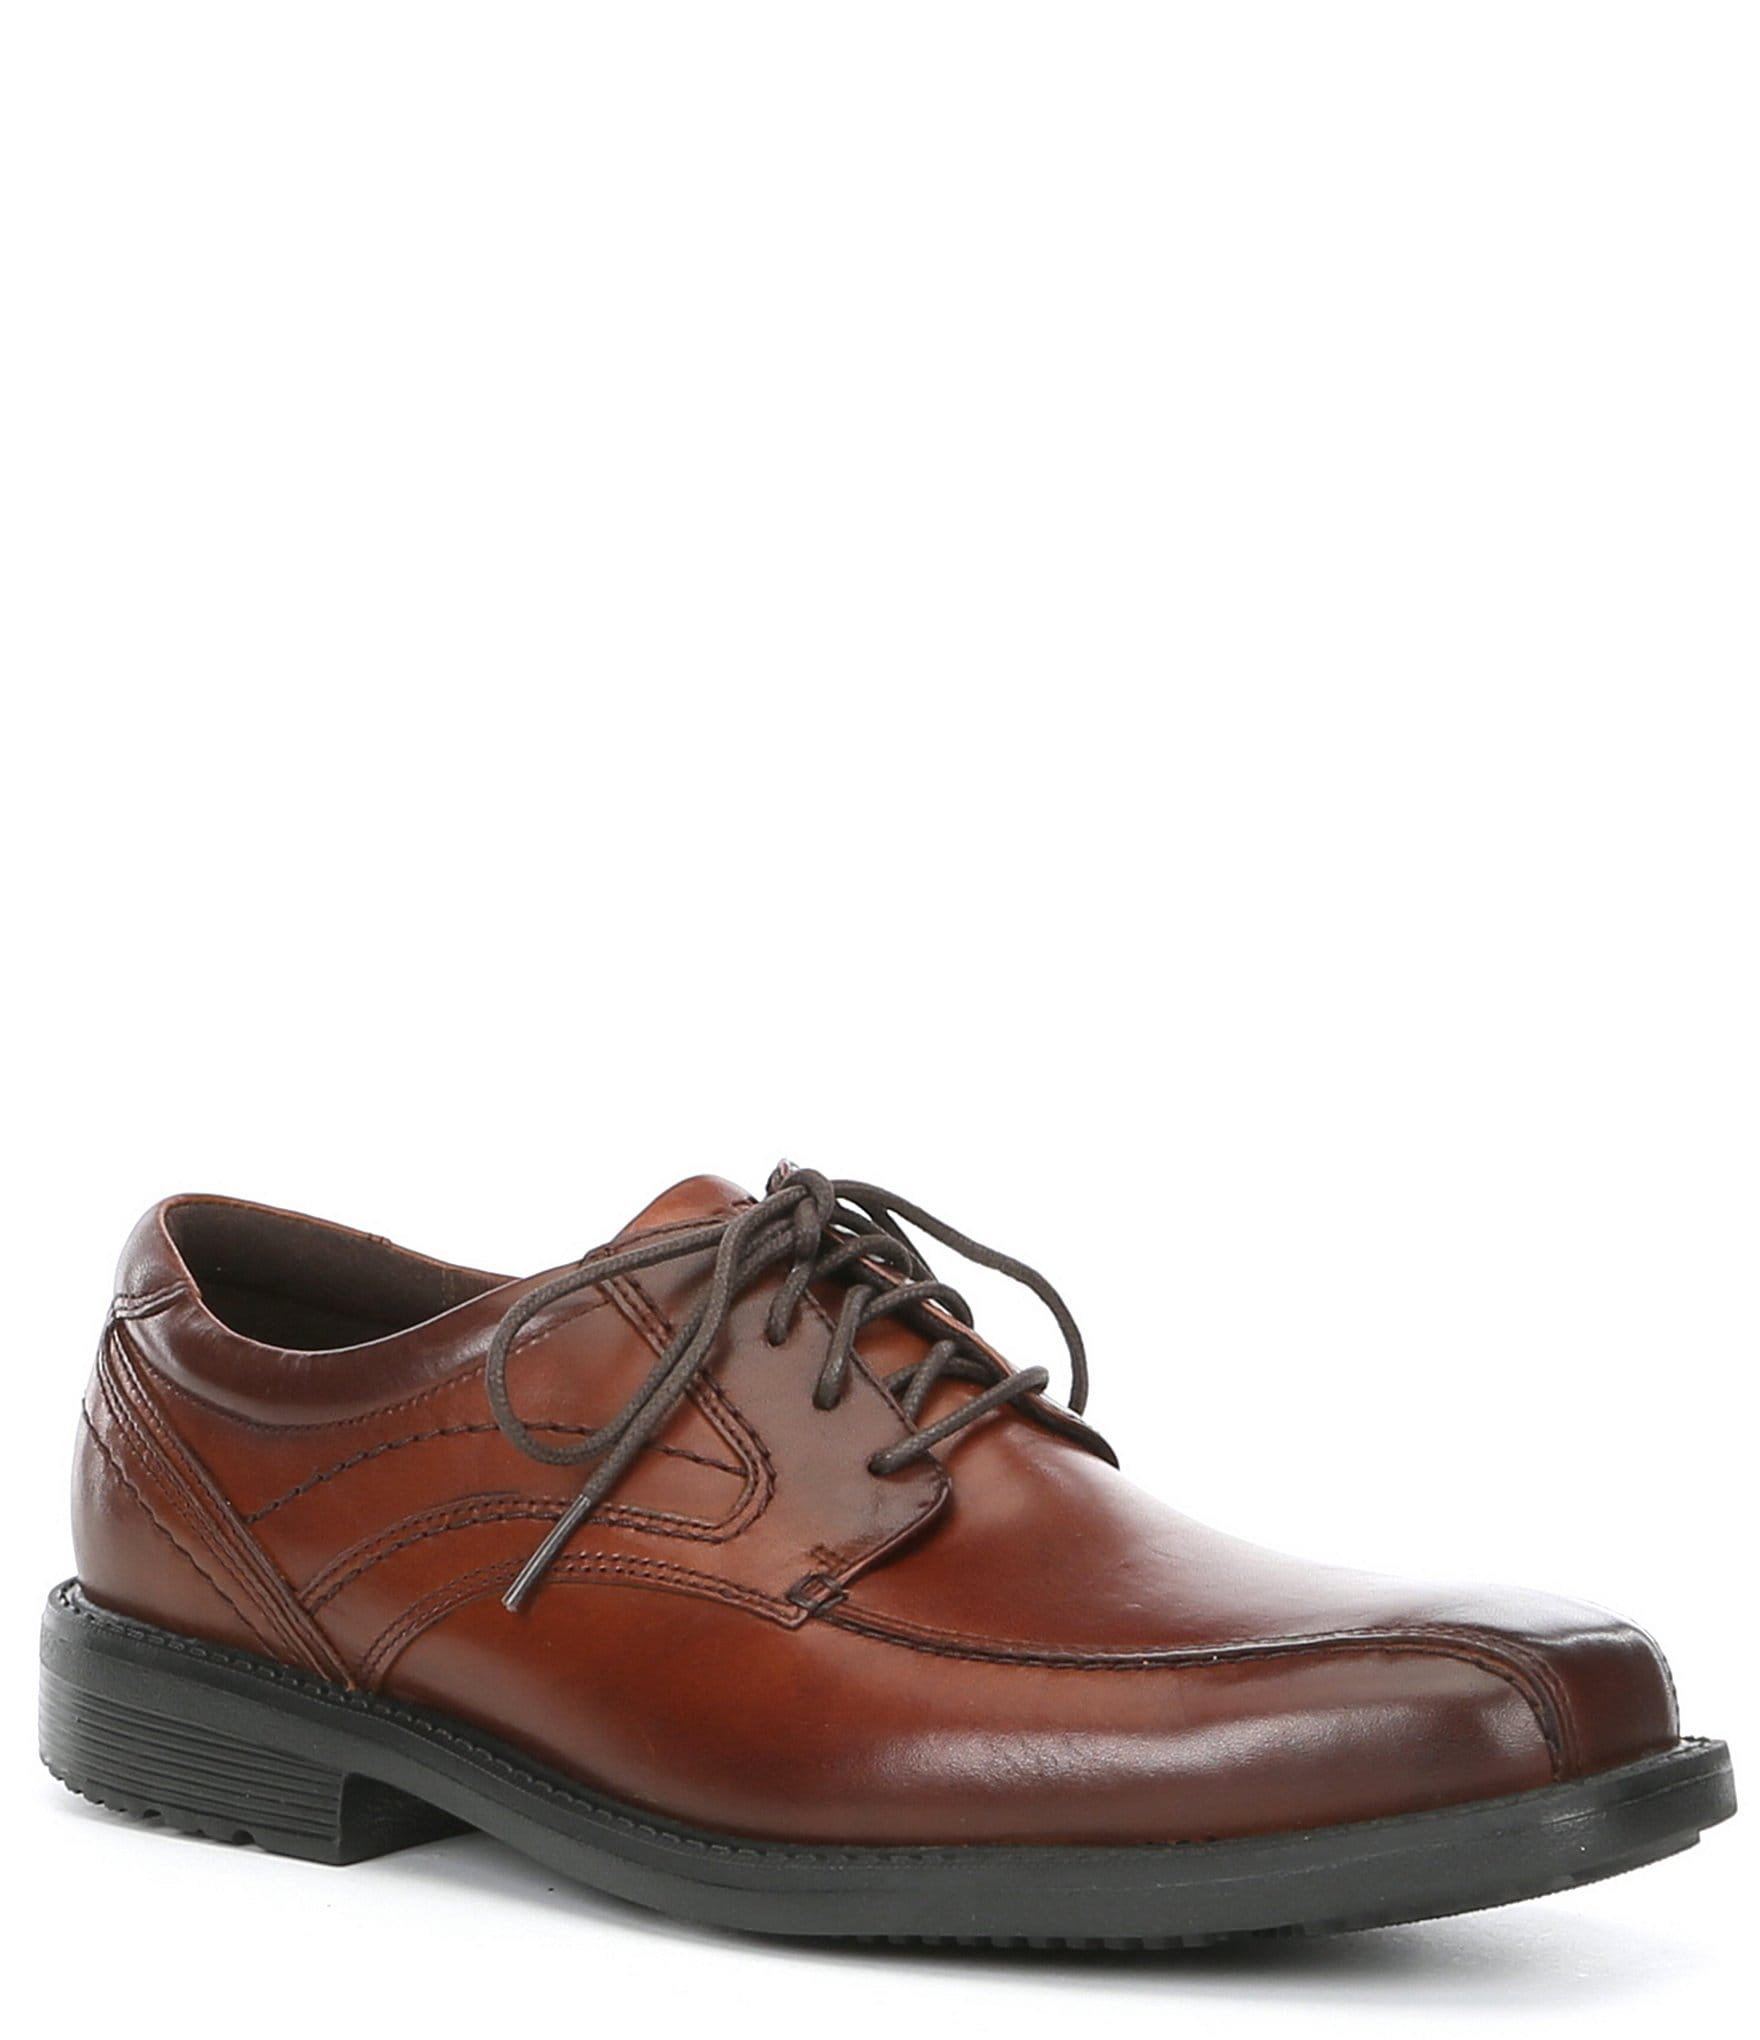 Style Leader 2 Leather Oxford